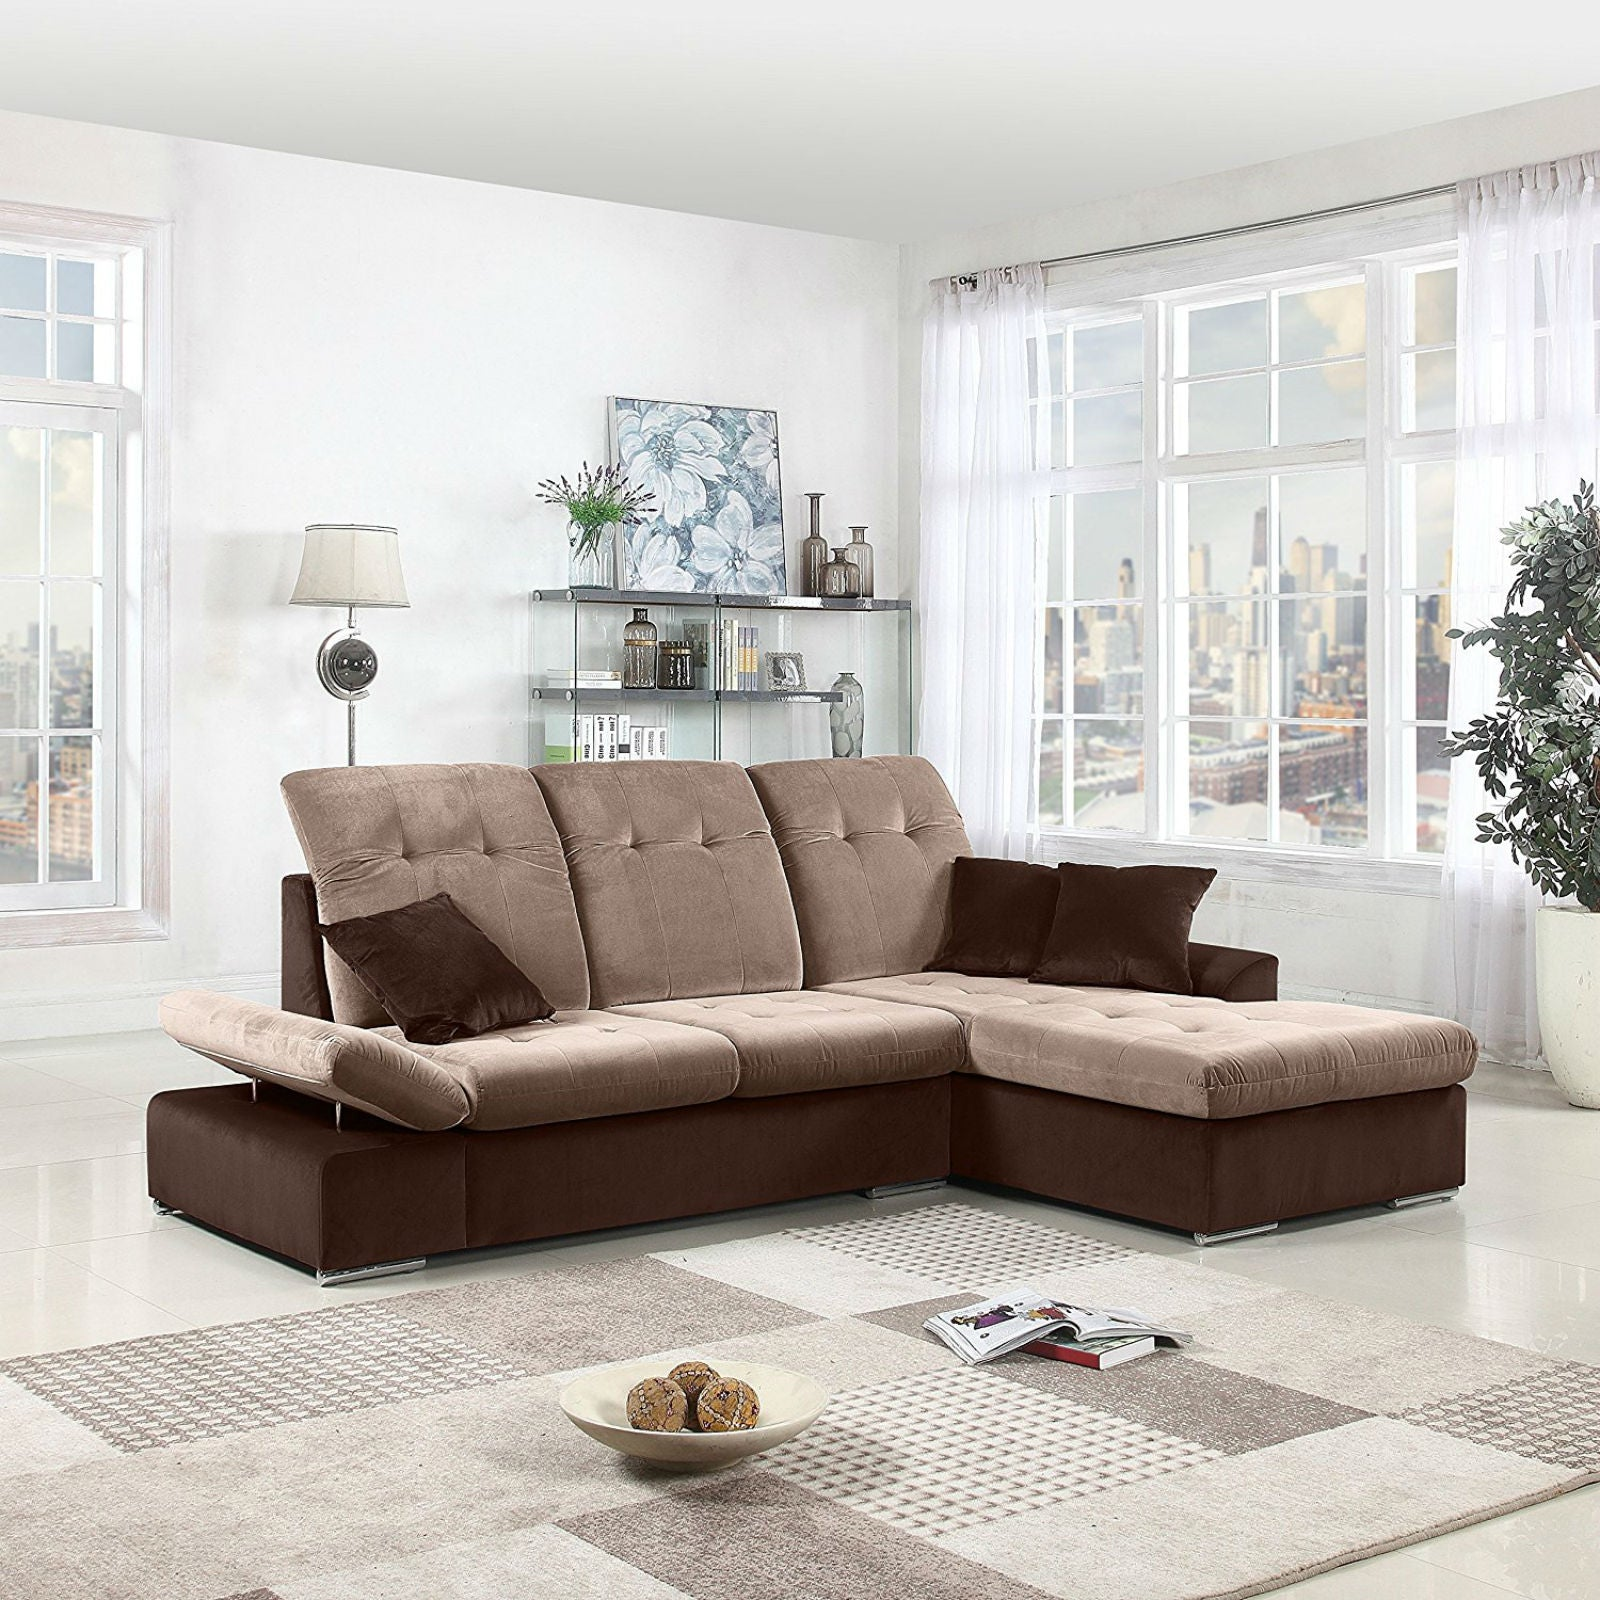 Good Concorde Microfiber Sectional Sofa With Chaise Lifestyle ...